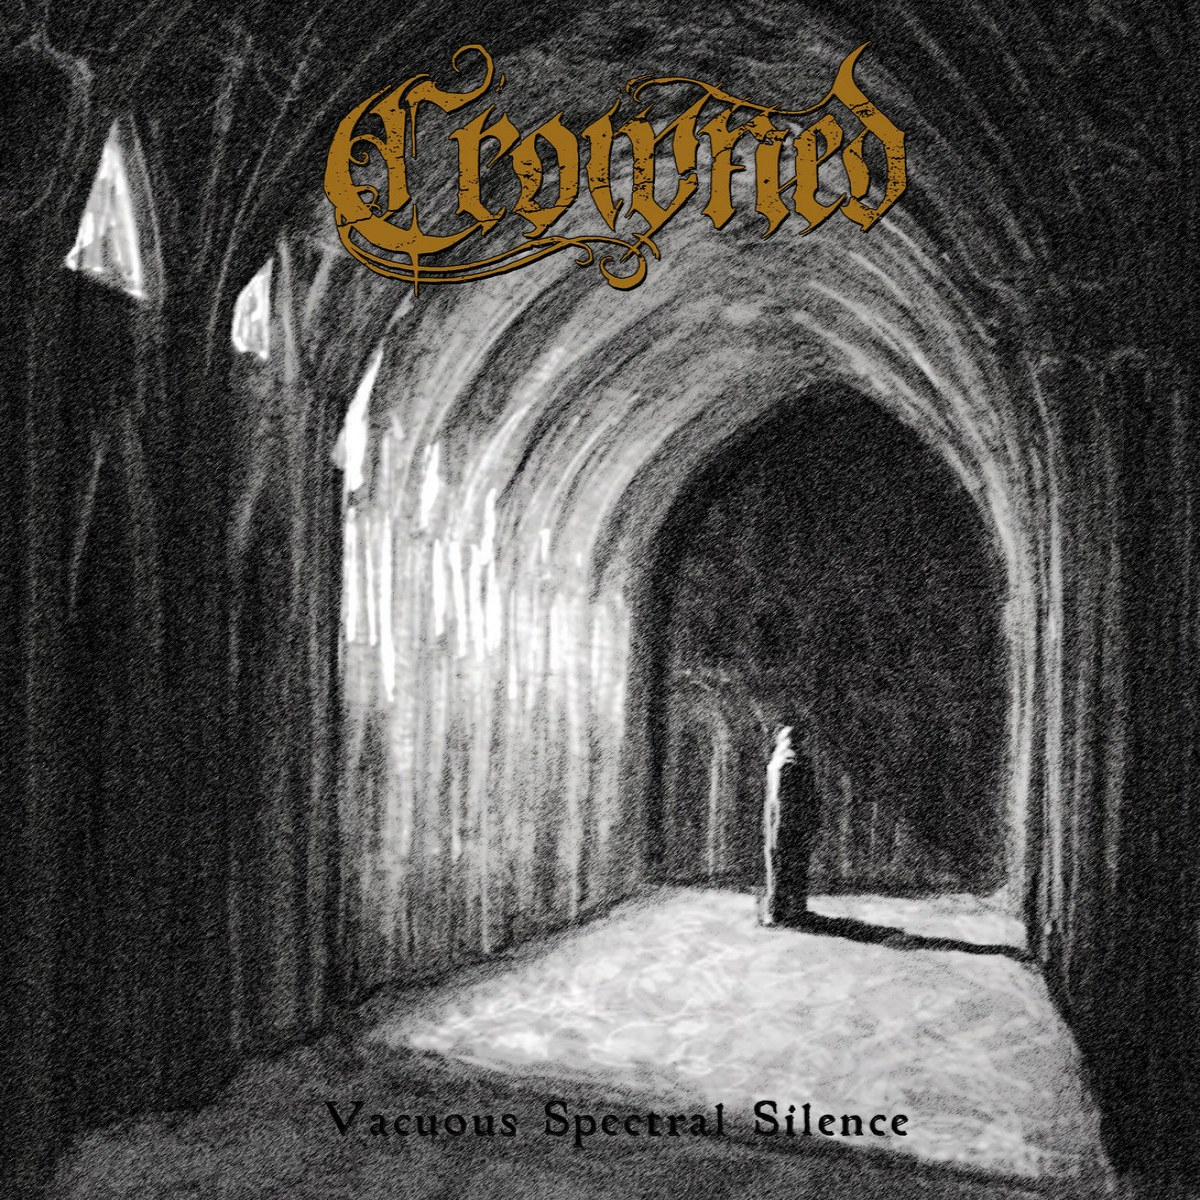 Review for Crowned - Vacuous Spectral Silence